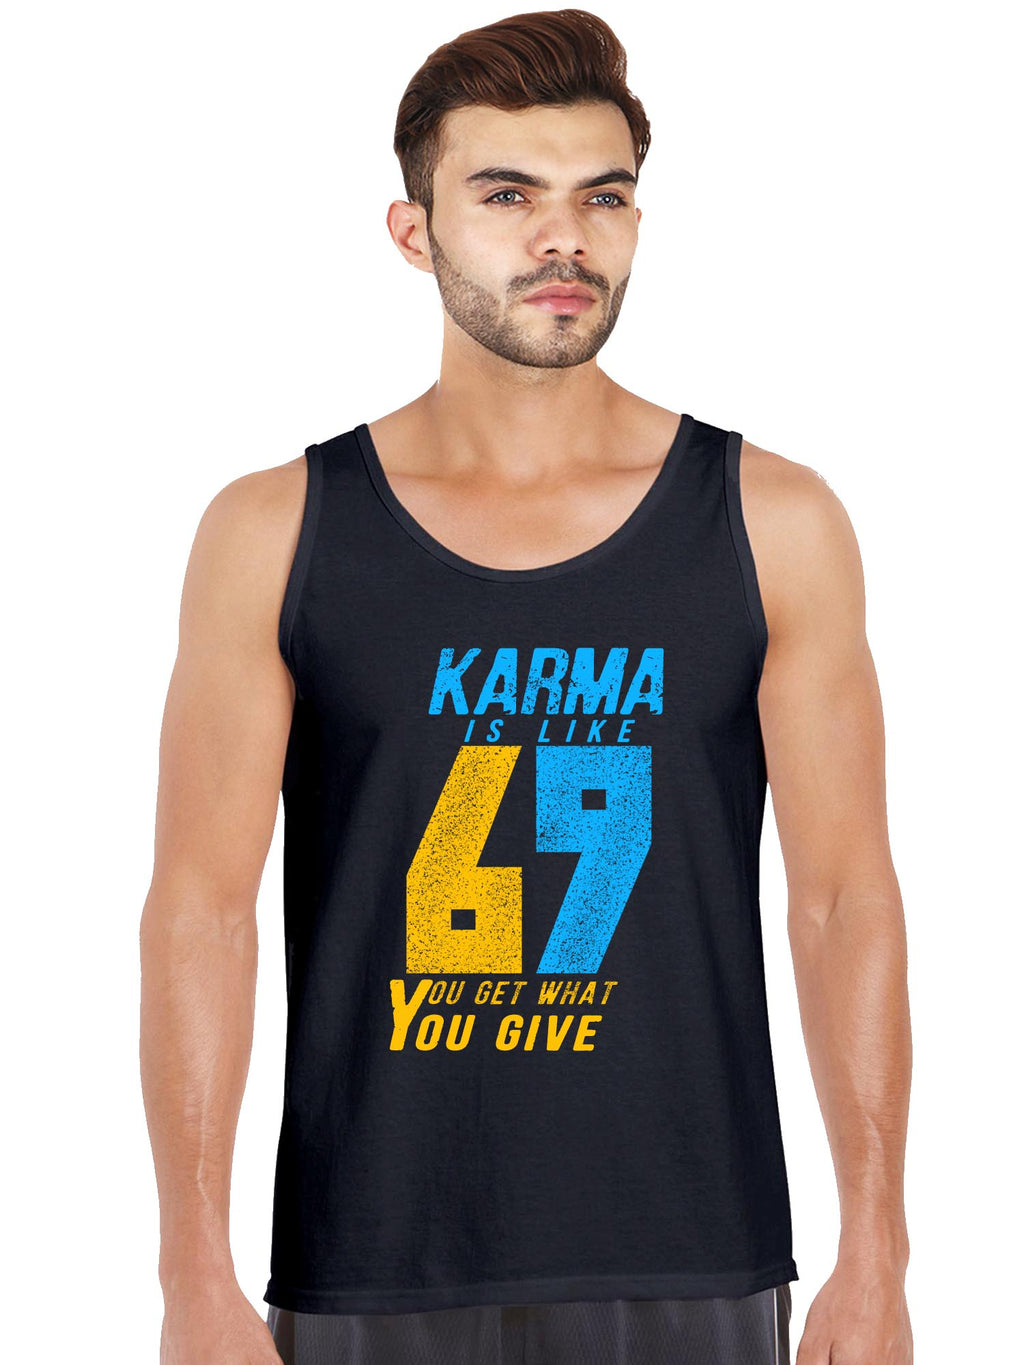 Karma 69 Graphics Printed Tank Top